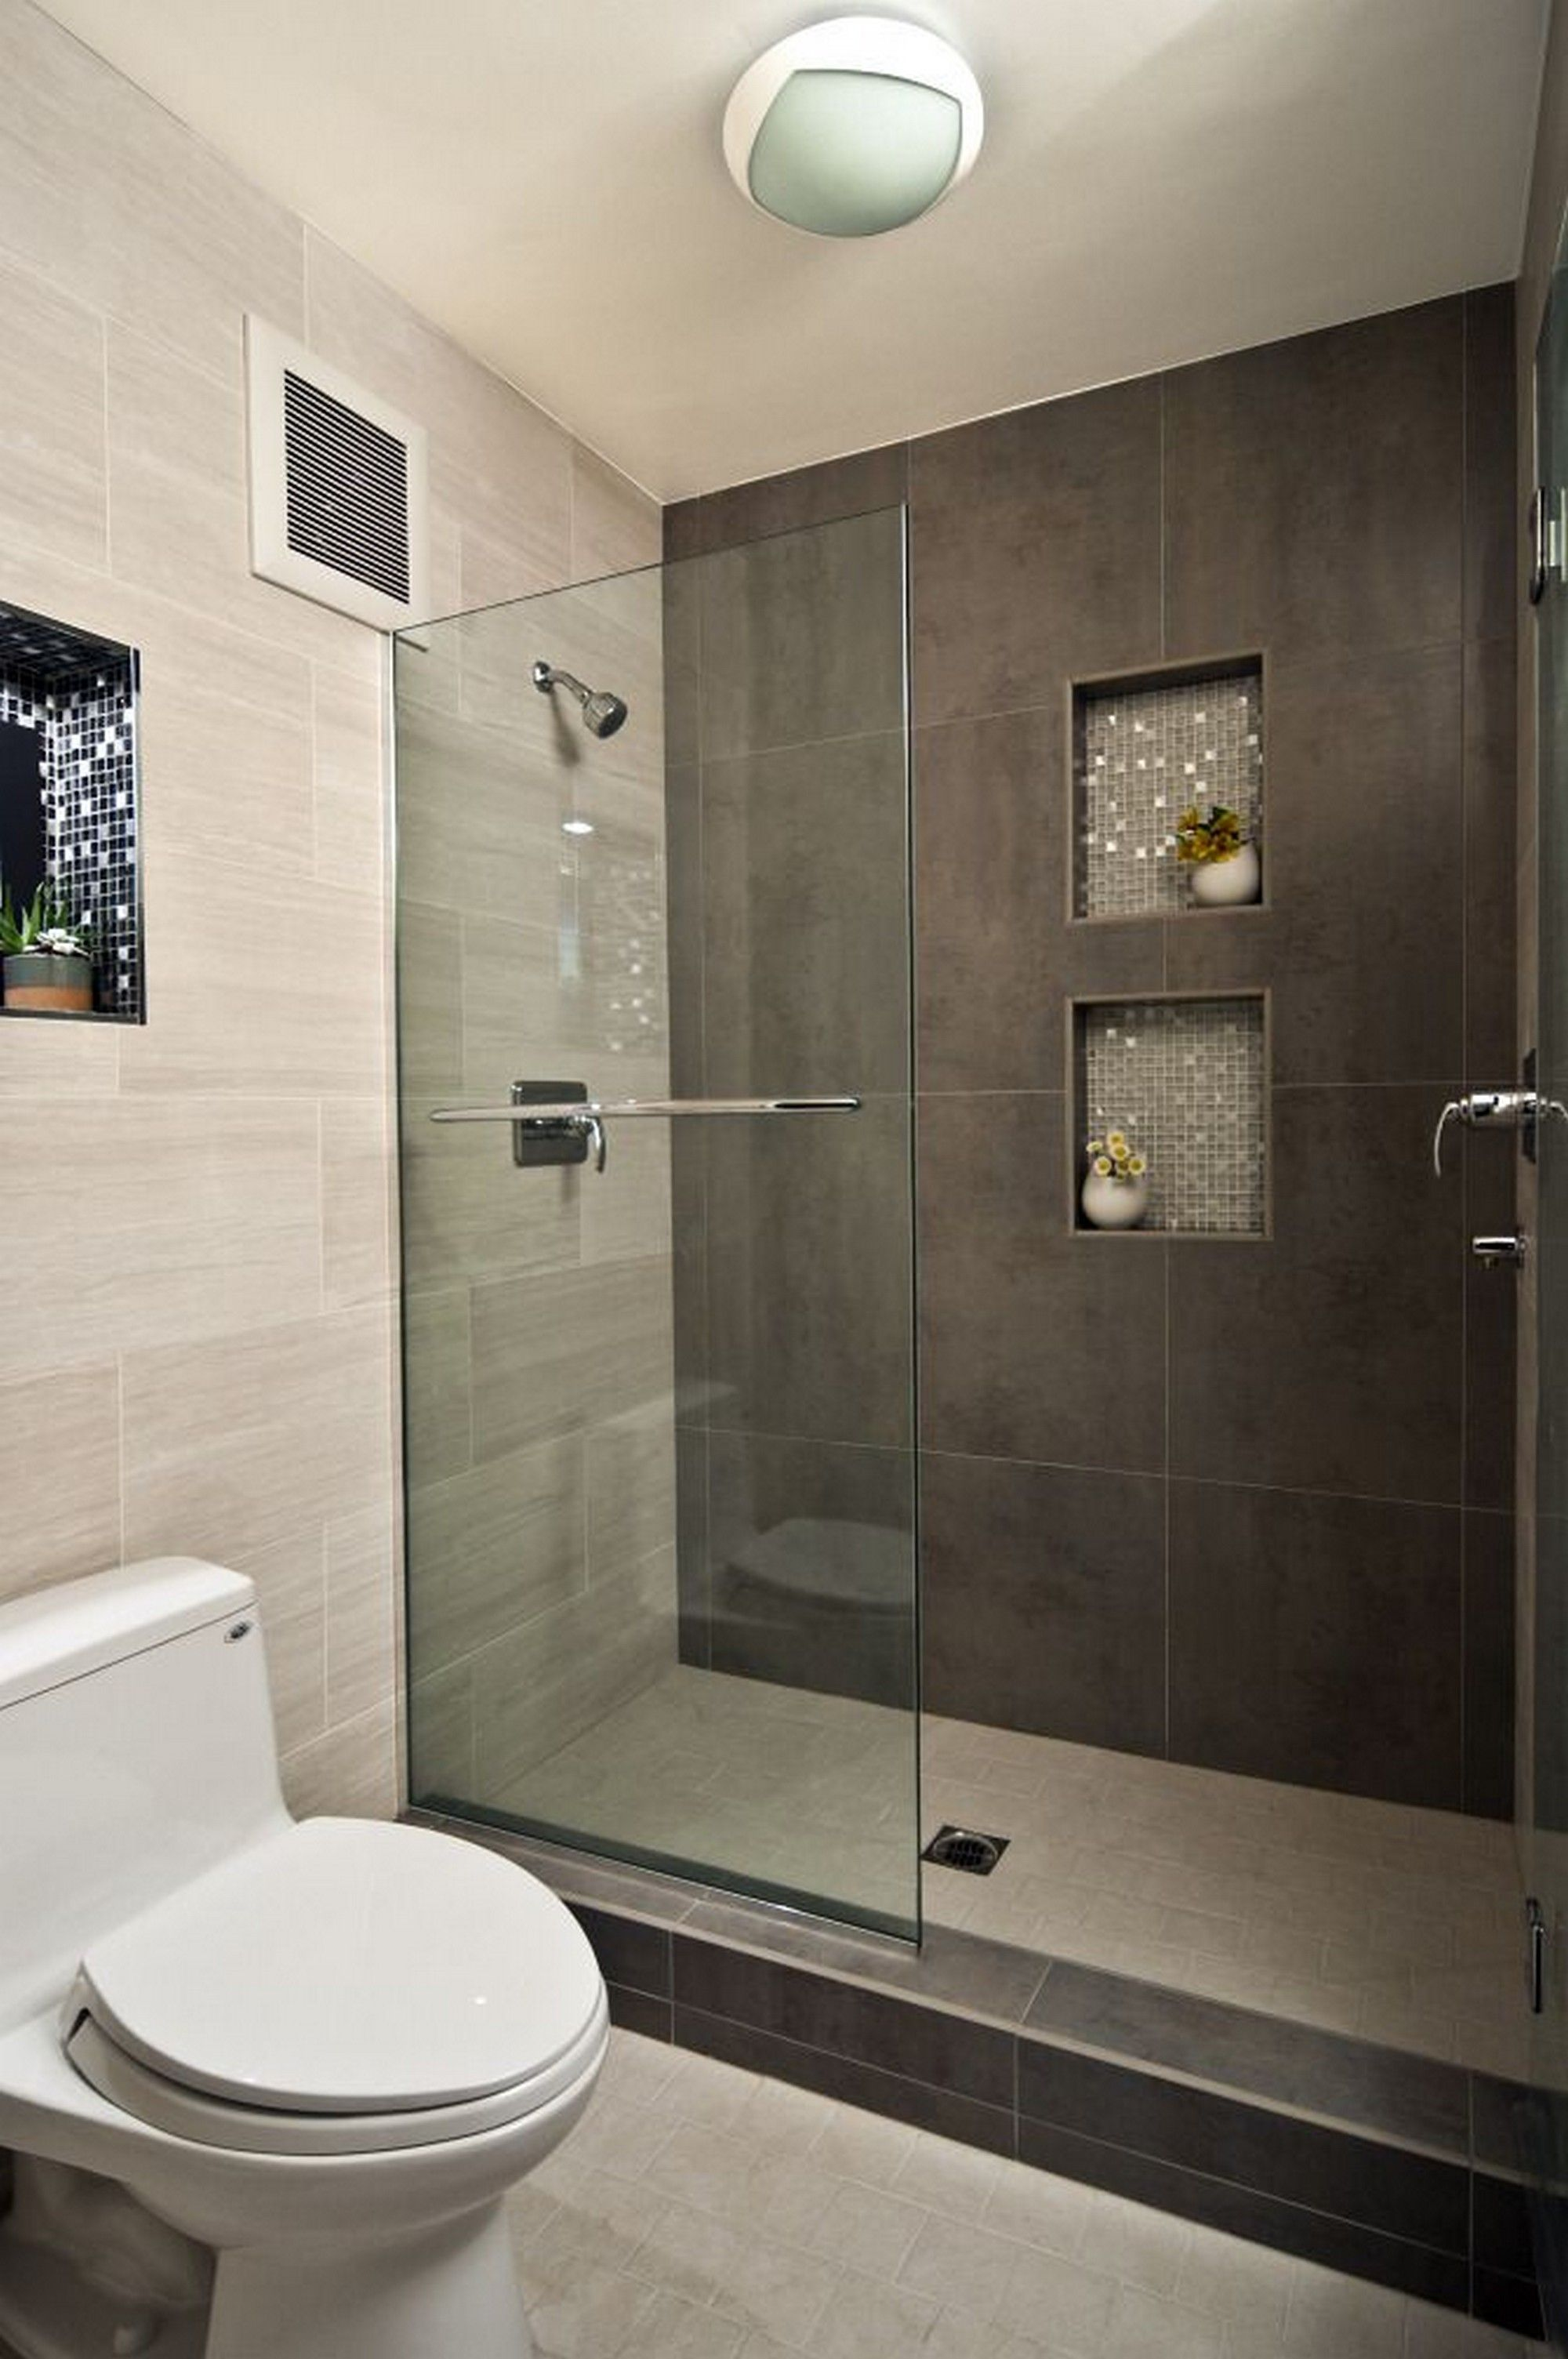 Modern bathroom design ideas with walk in shower small for Small bathroom ideas hdb